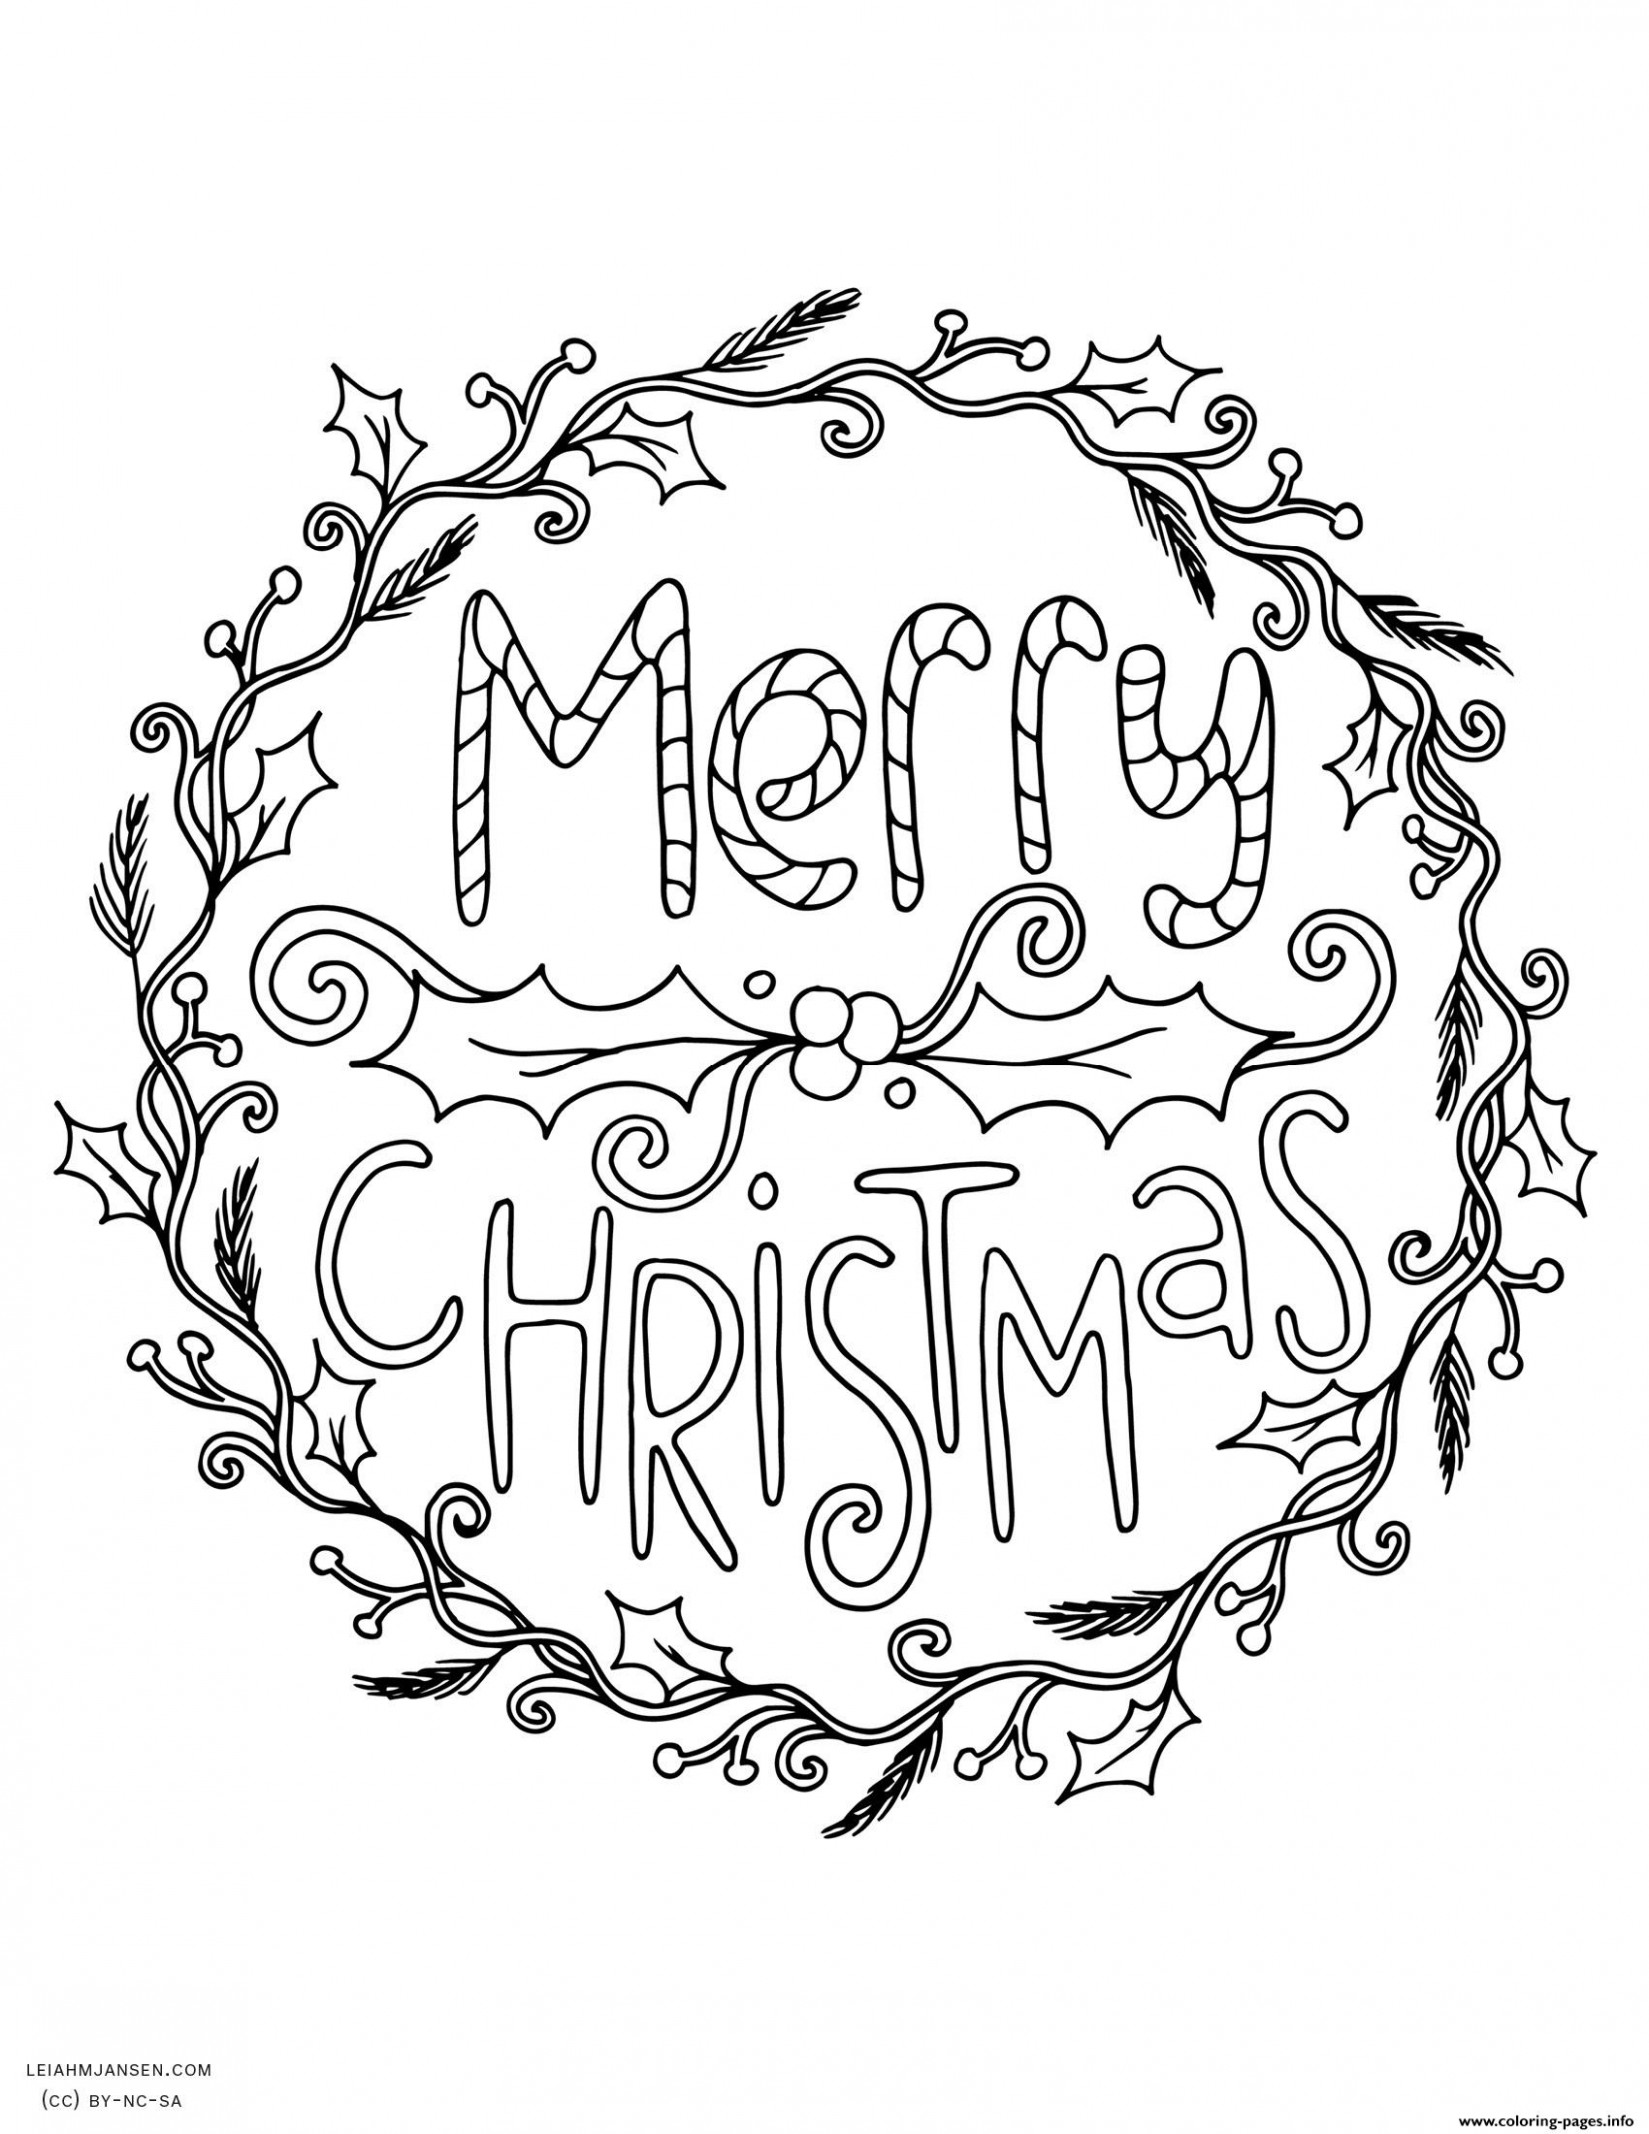 Merry Christmas Wreath Adult Coloring Pages Printable – Christmas Adults Coloring Pages